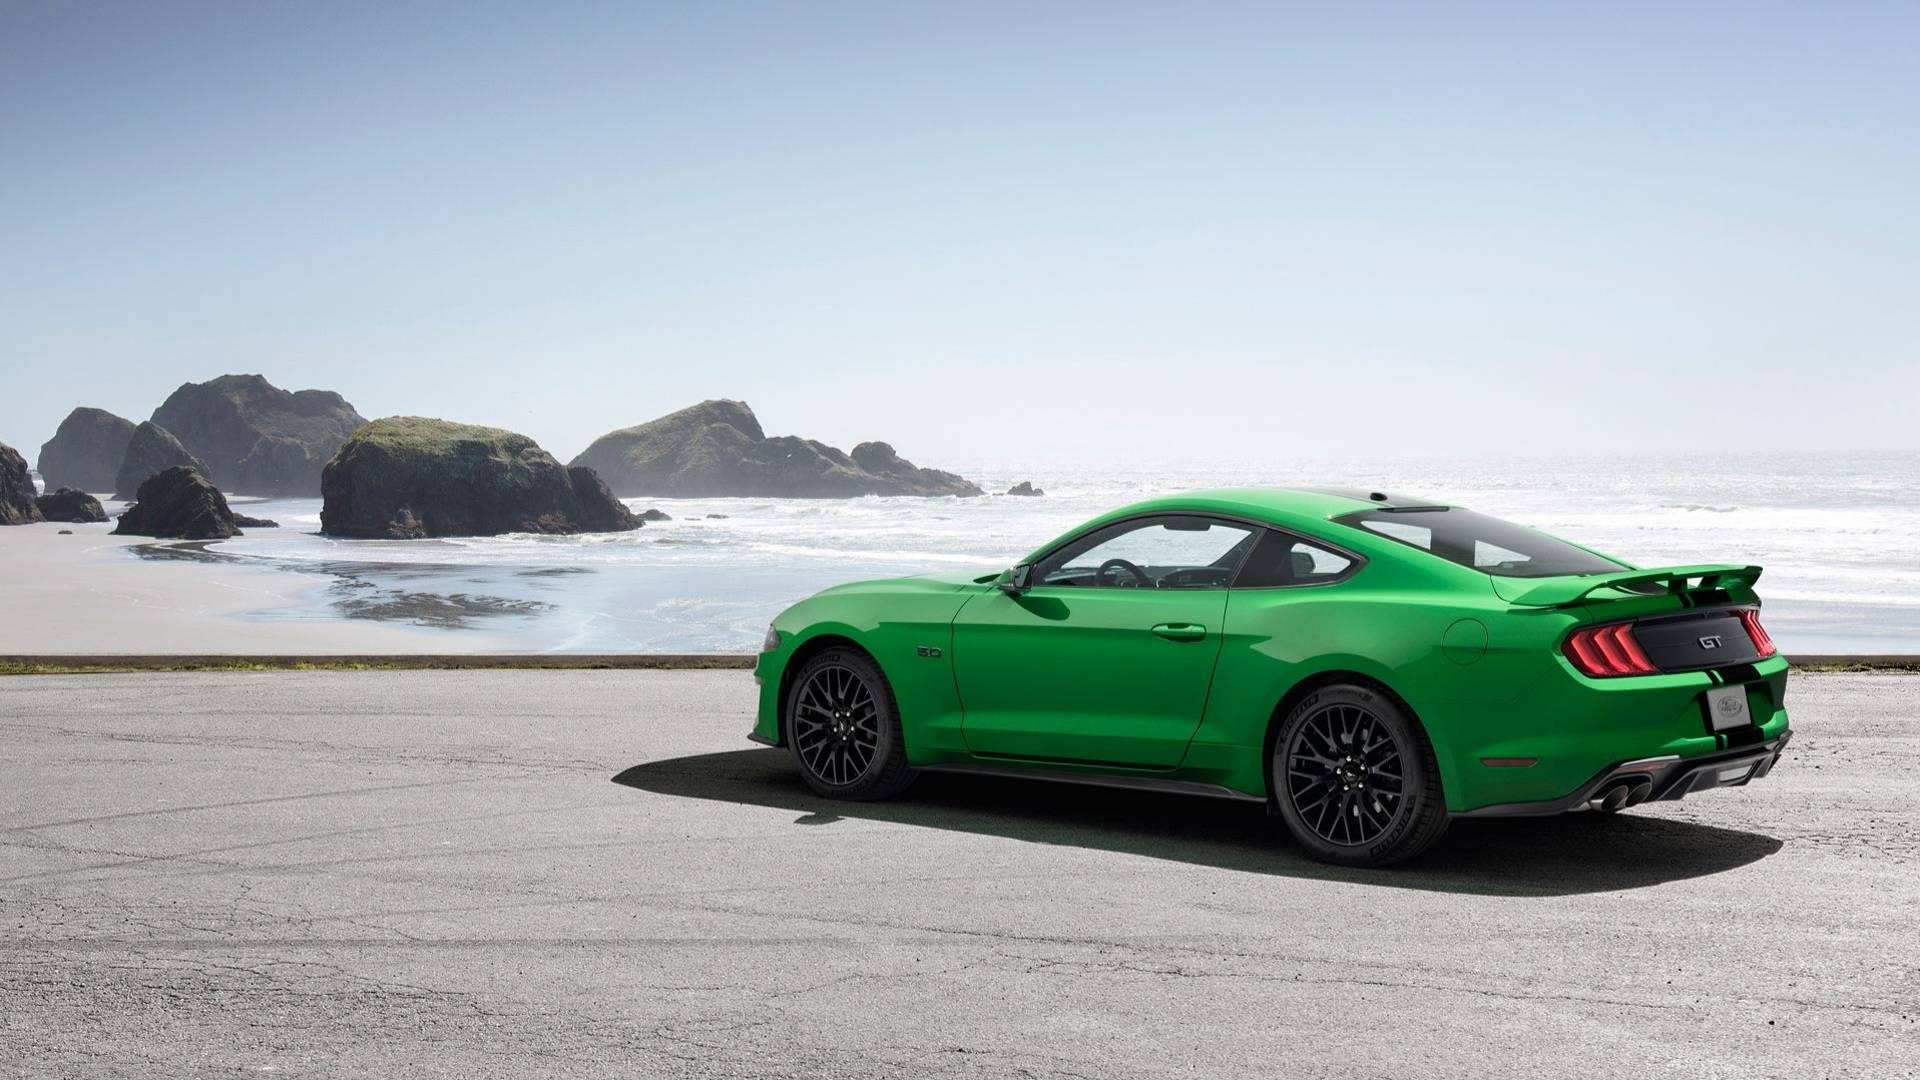 90 Great 2019 Ford Mustang Colors Price and Review by 2019 Ford Mustang Colors